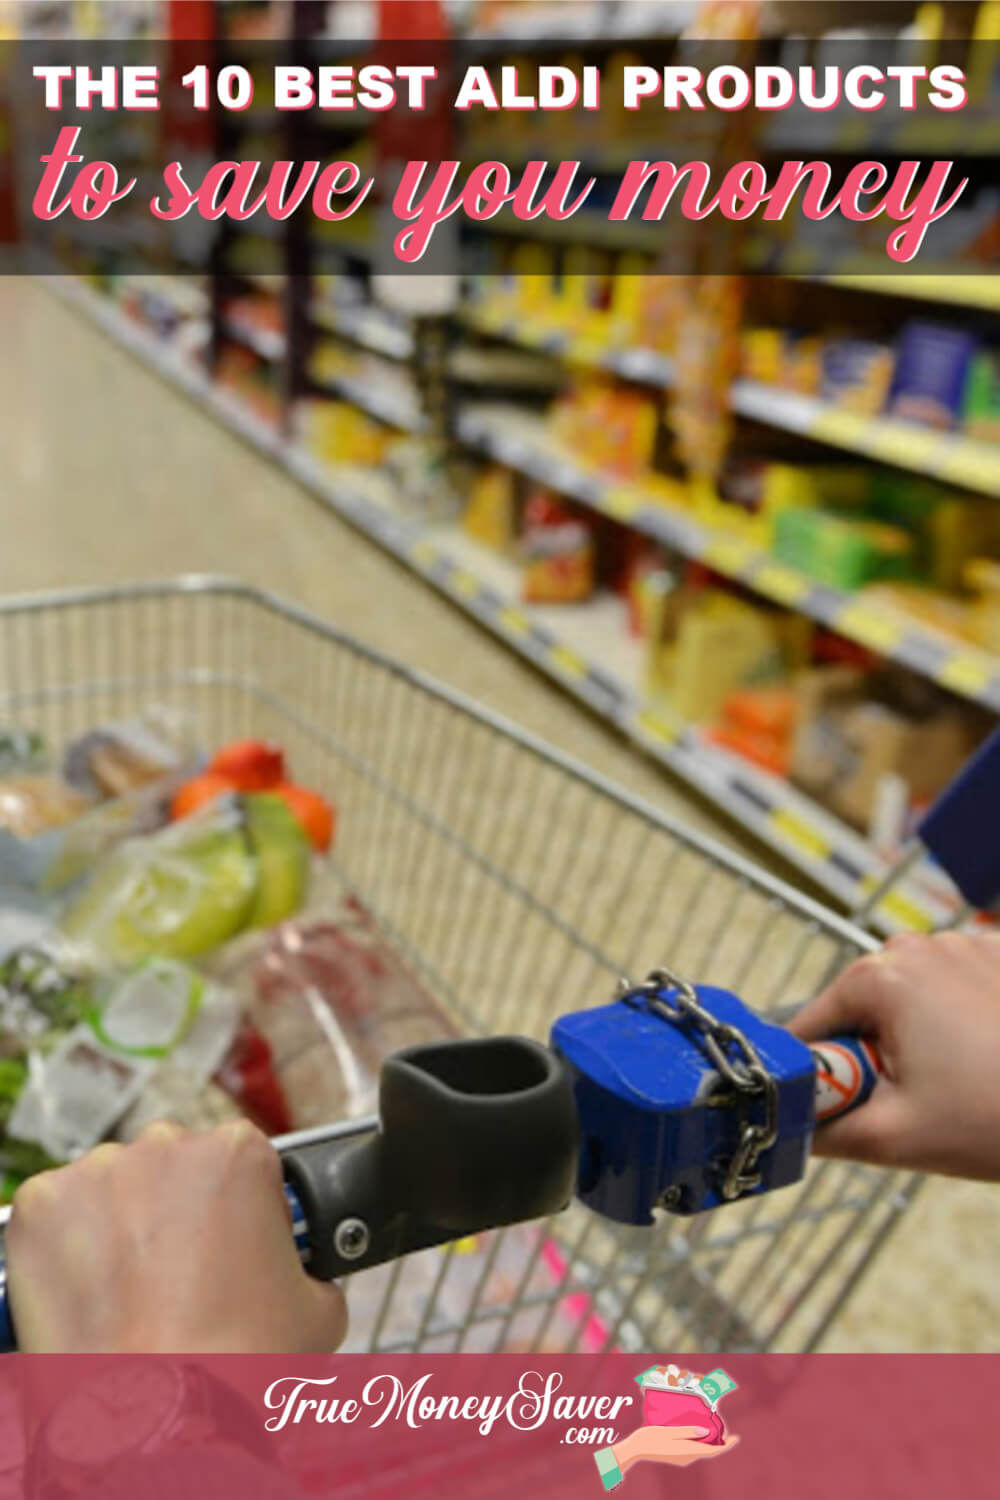 Aldi doesn\'t take coupons, but it is still a fantastic place to shop. Pick up these 10 Aldi products over other stores for big savings. #aldifinds #savingmoney #truemoneysaver #aldi #groceryshopping #grocerylist